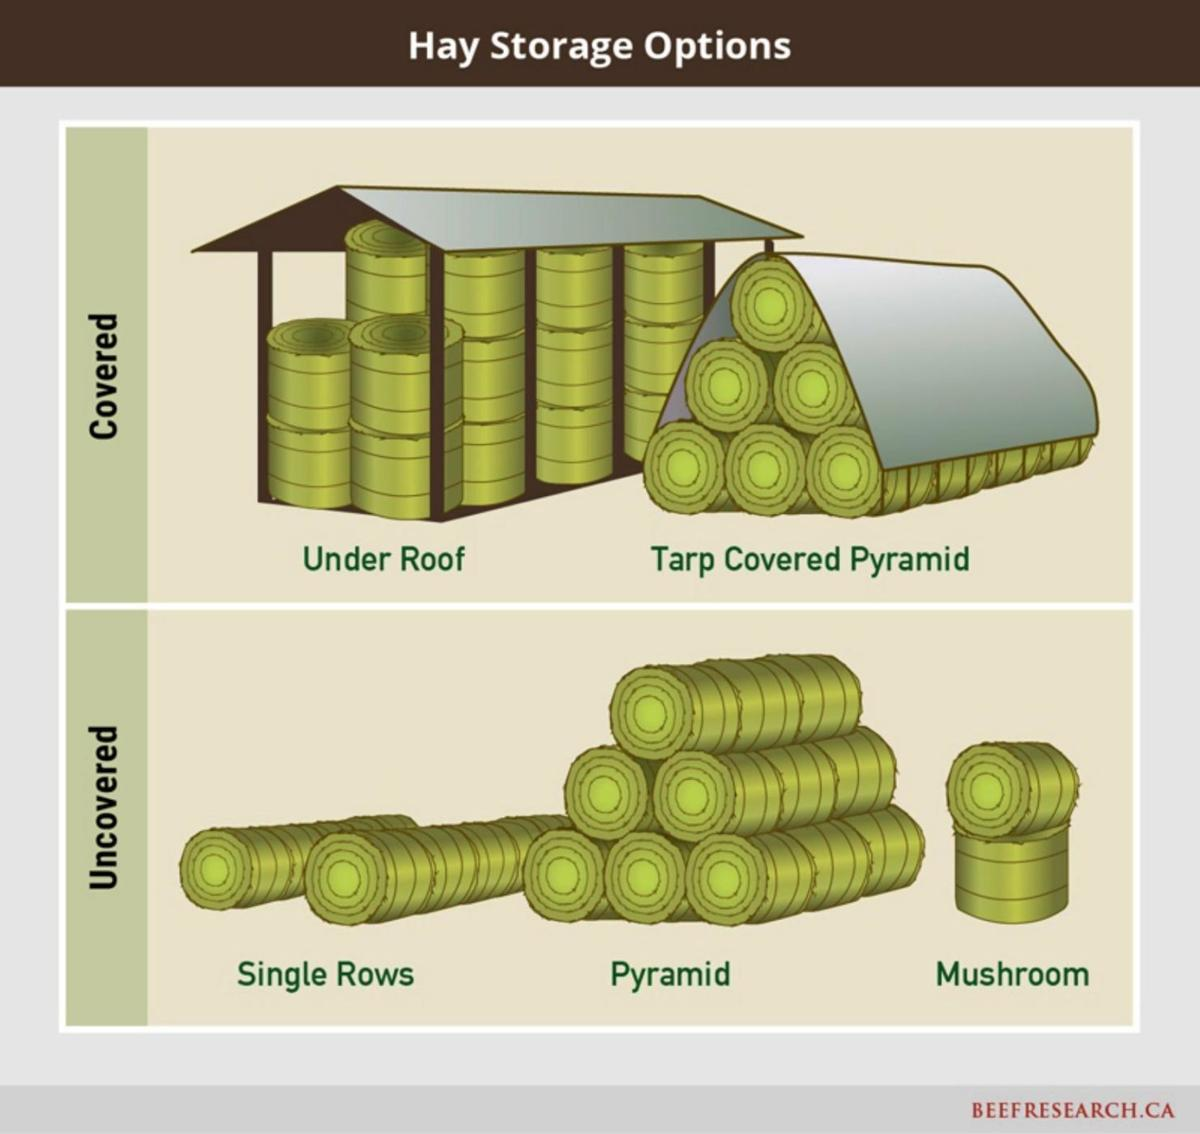 Hay Storage Options